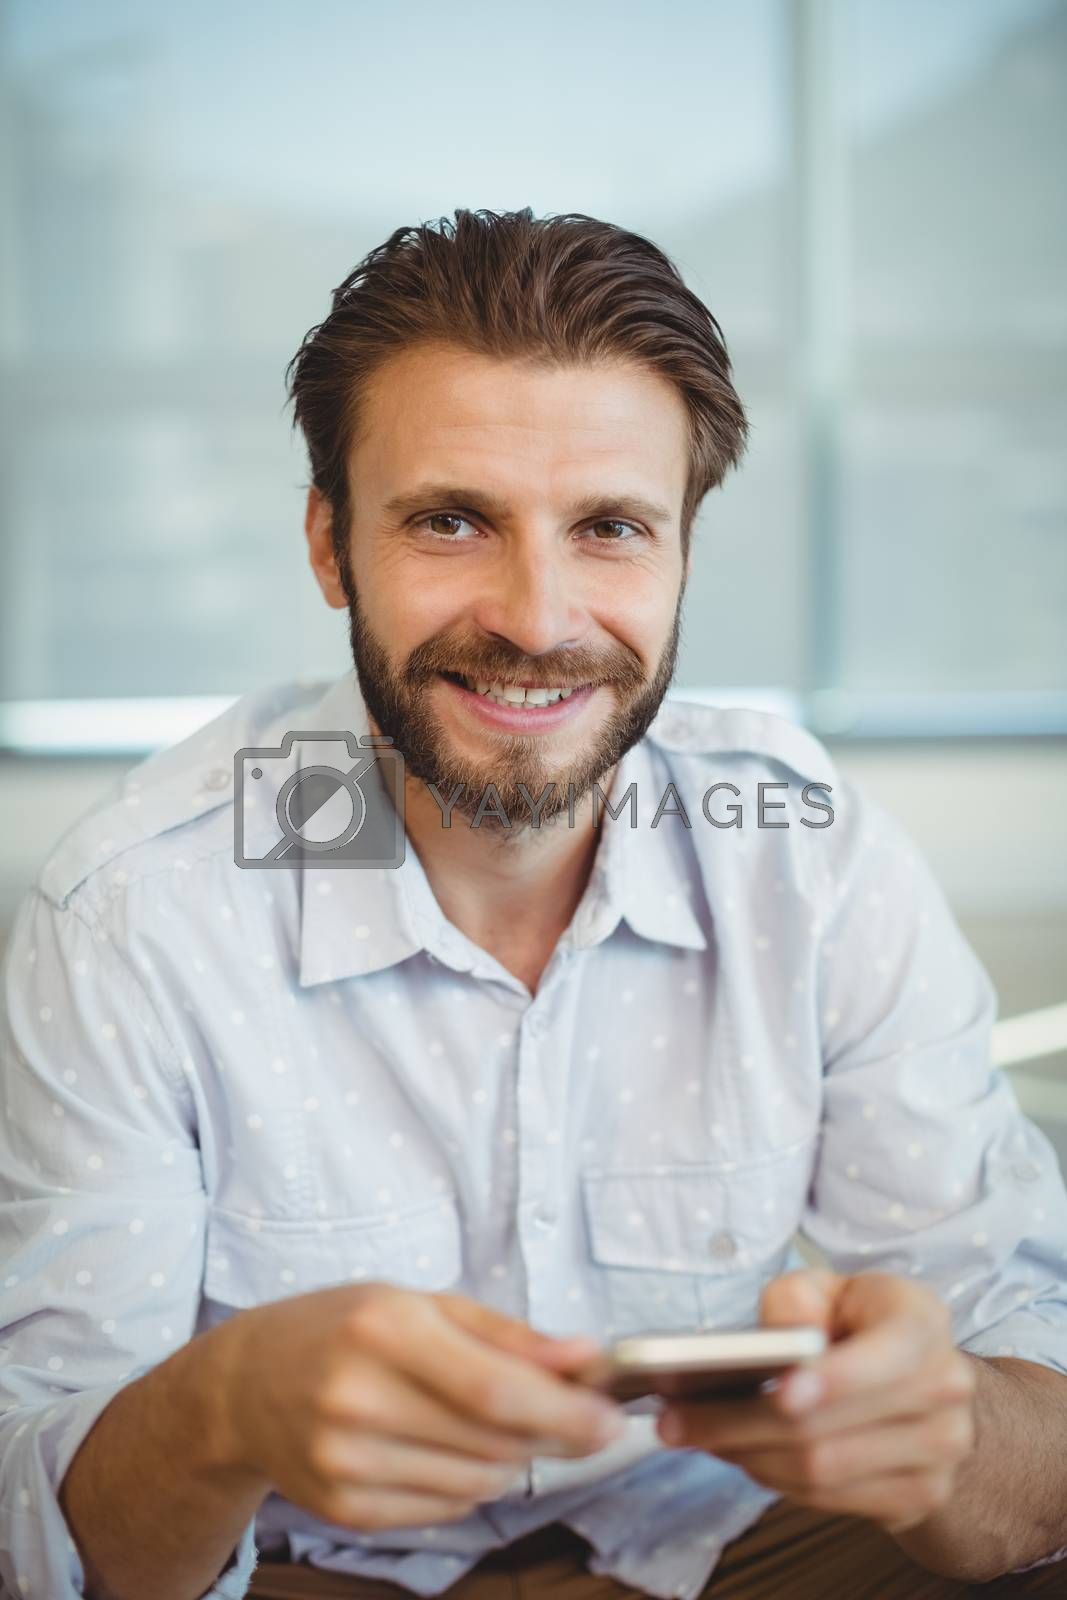 Portrait of male business executives using mobile phone in office